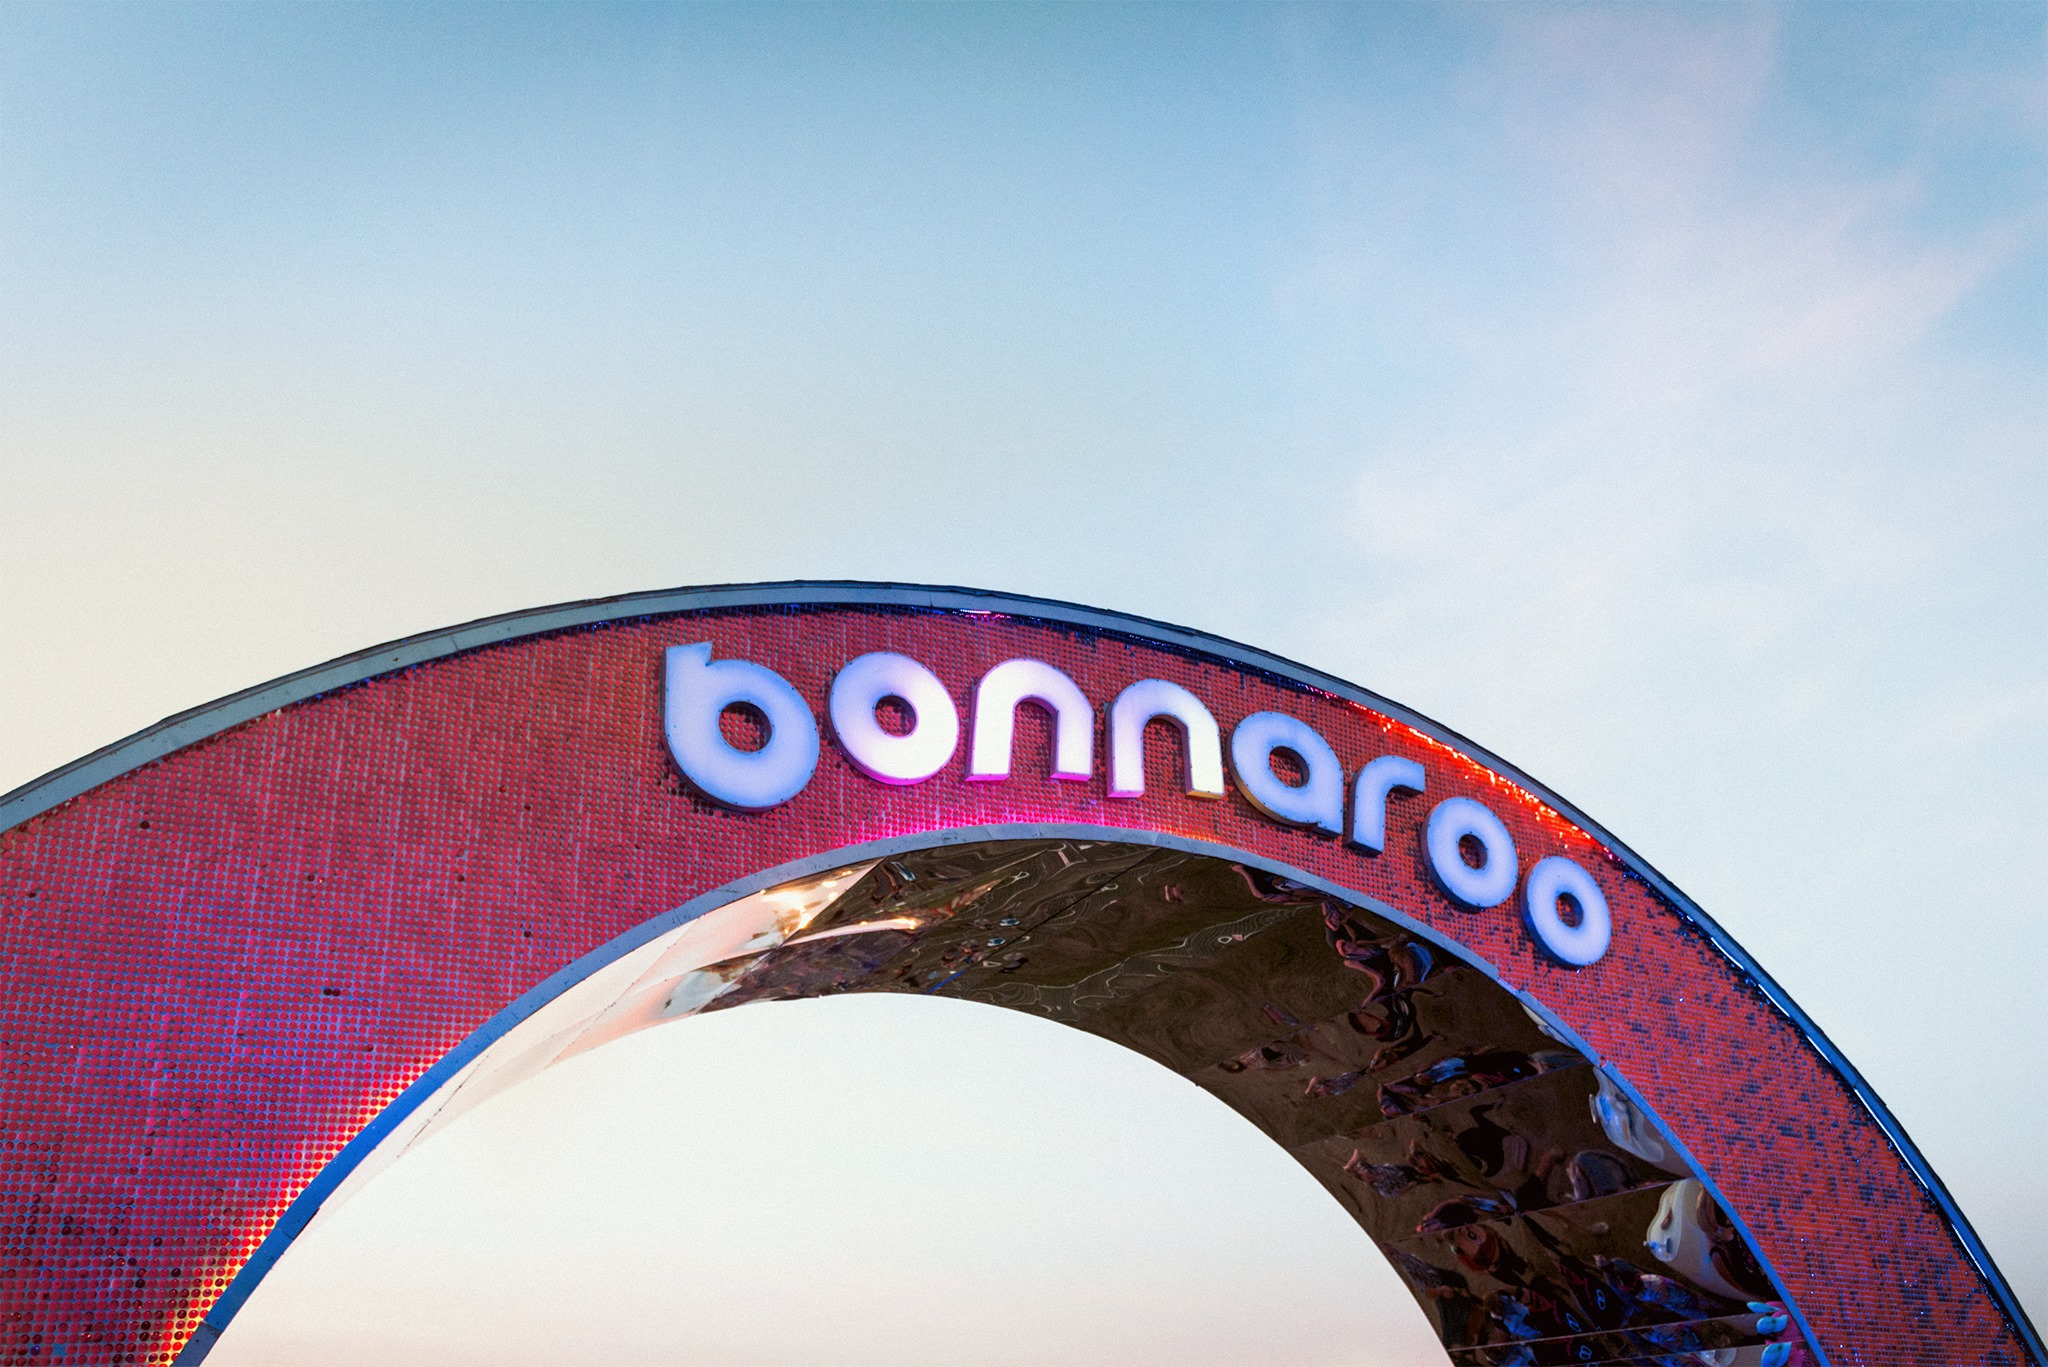 Bonnaroo is Back for 2021